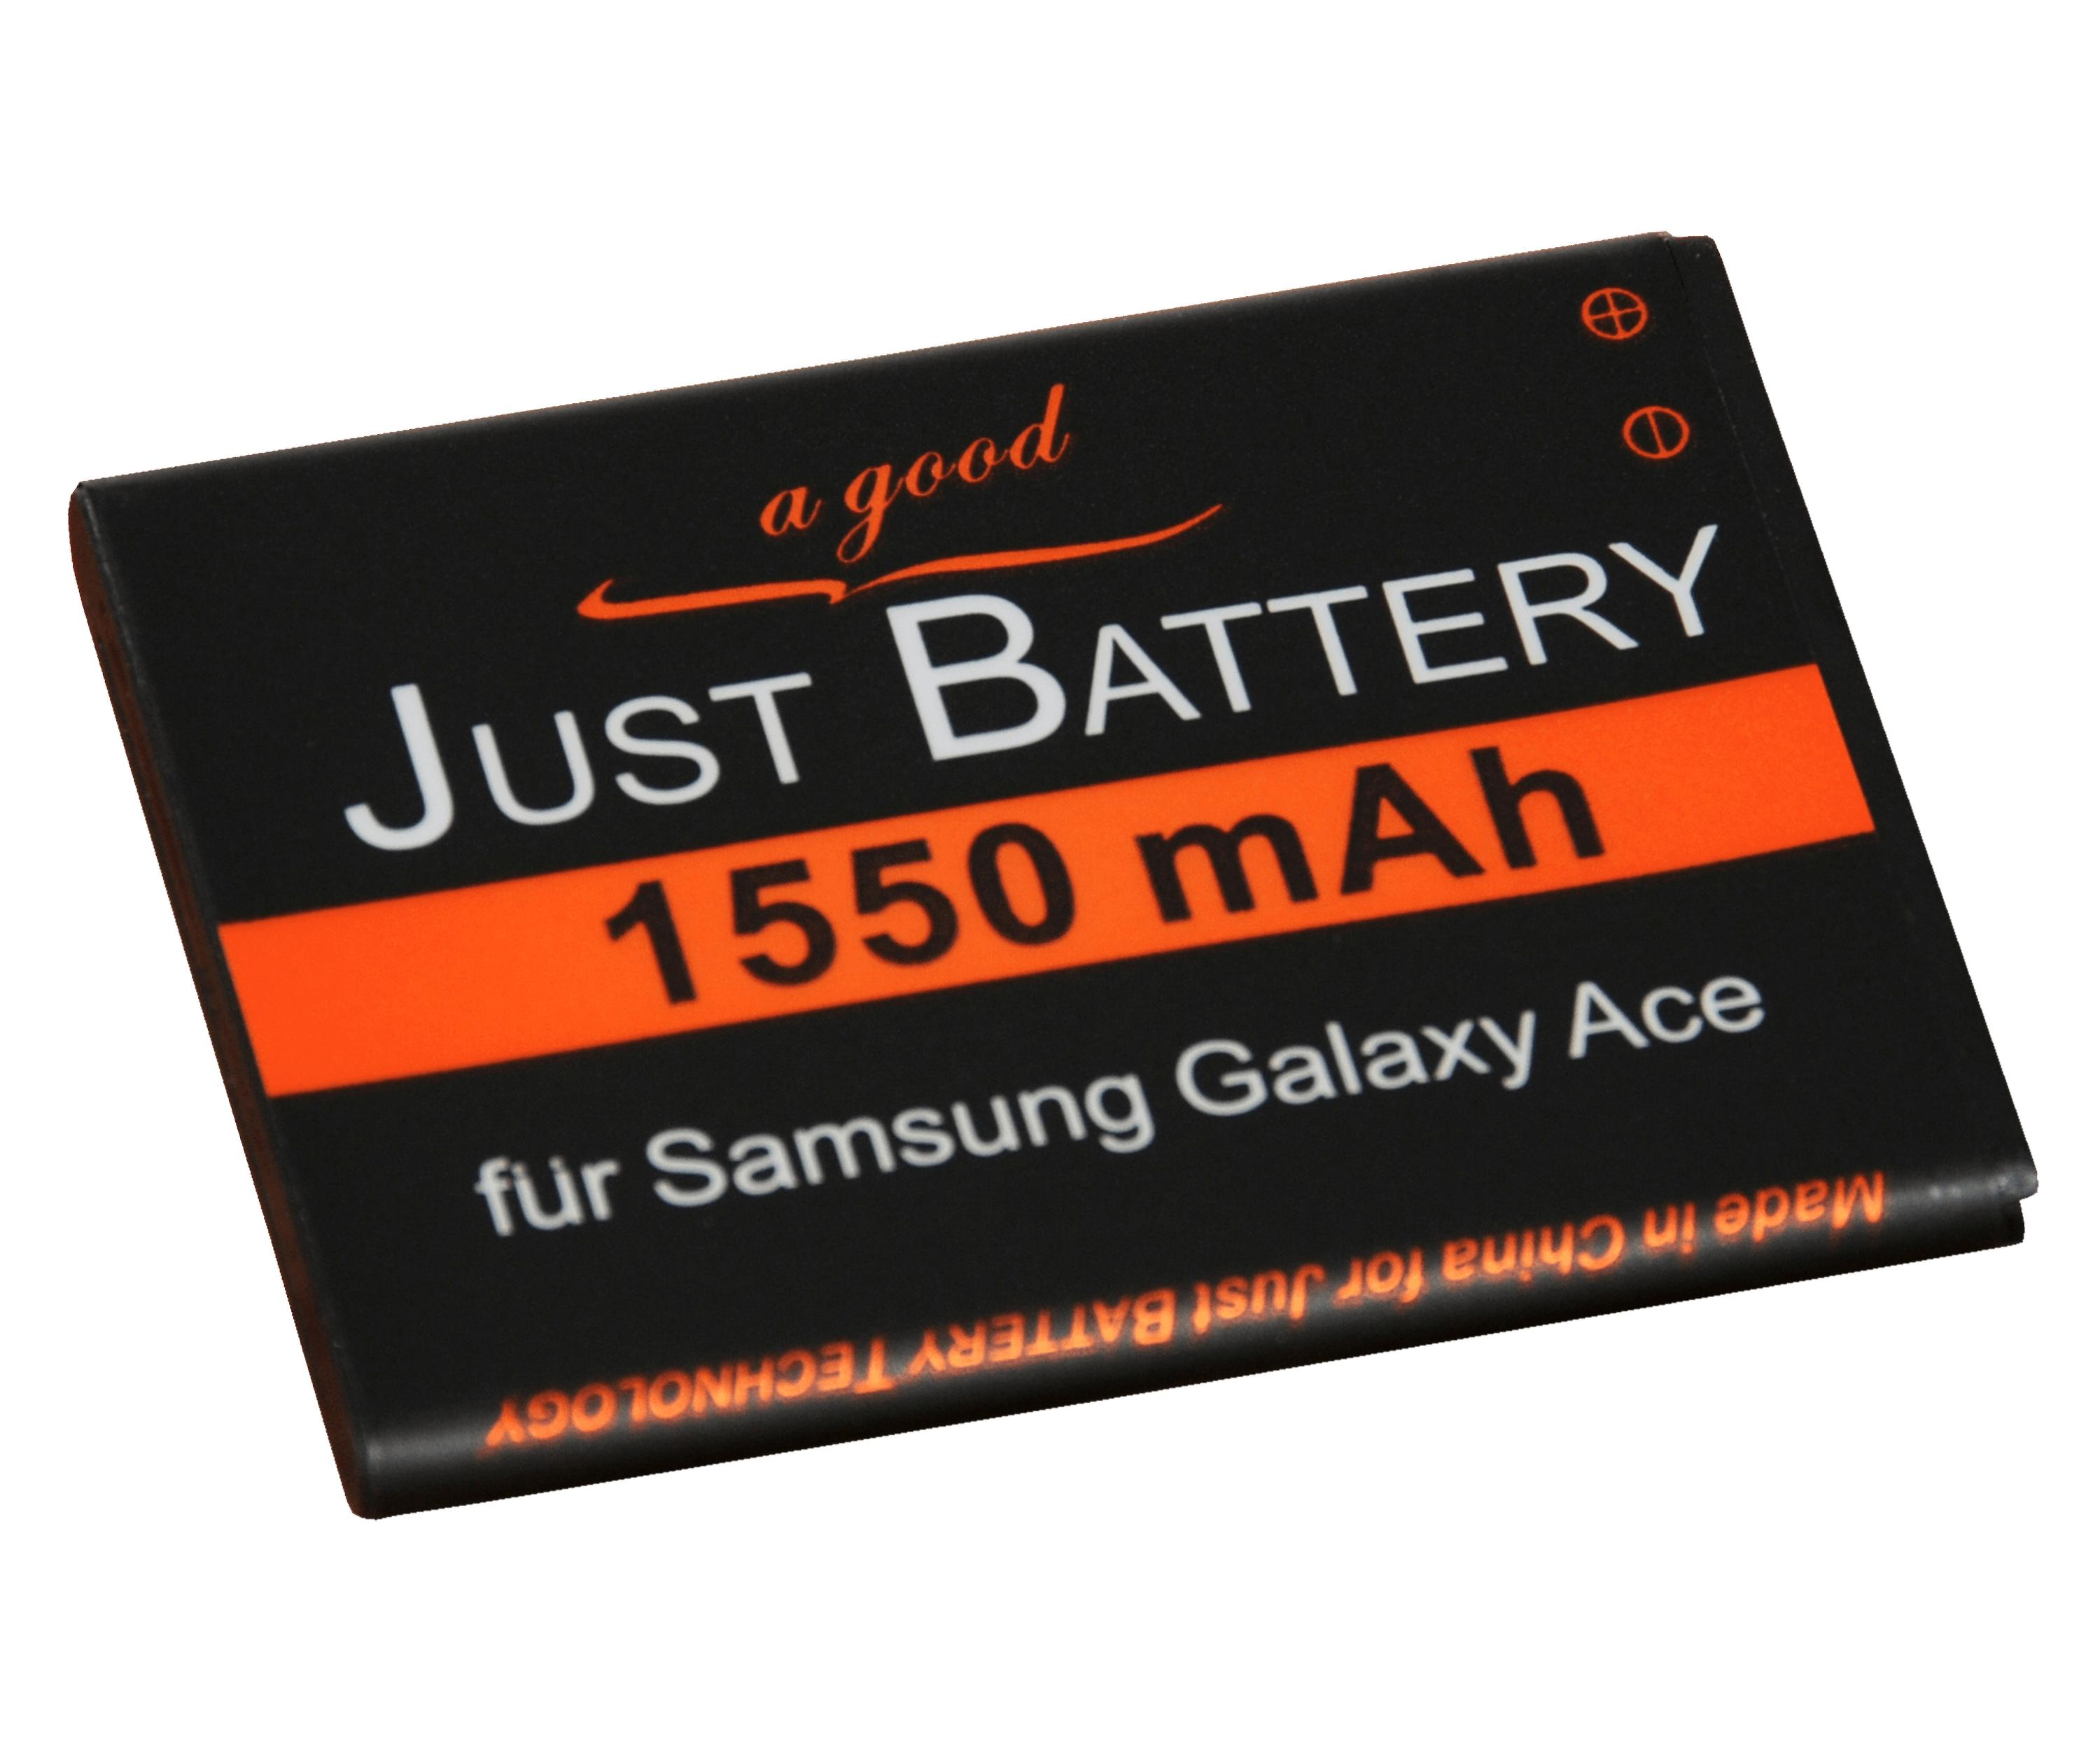 Battery for Samsung Galaxy music GT-s6010